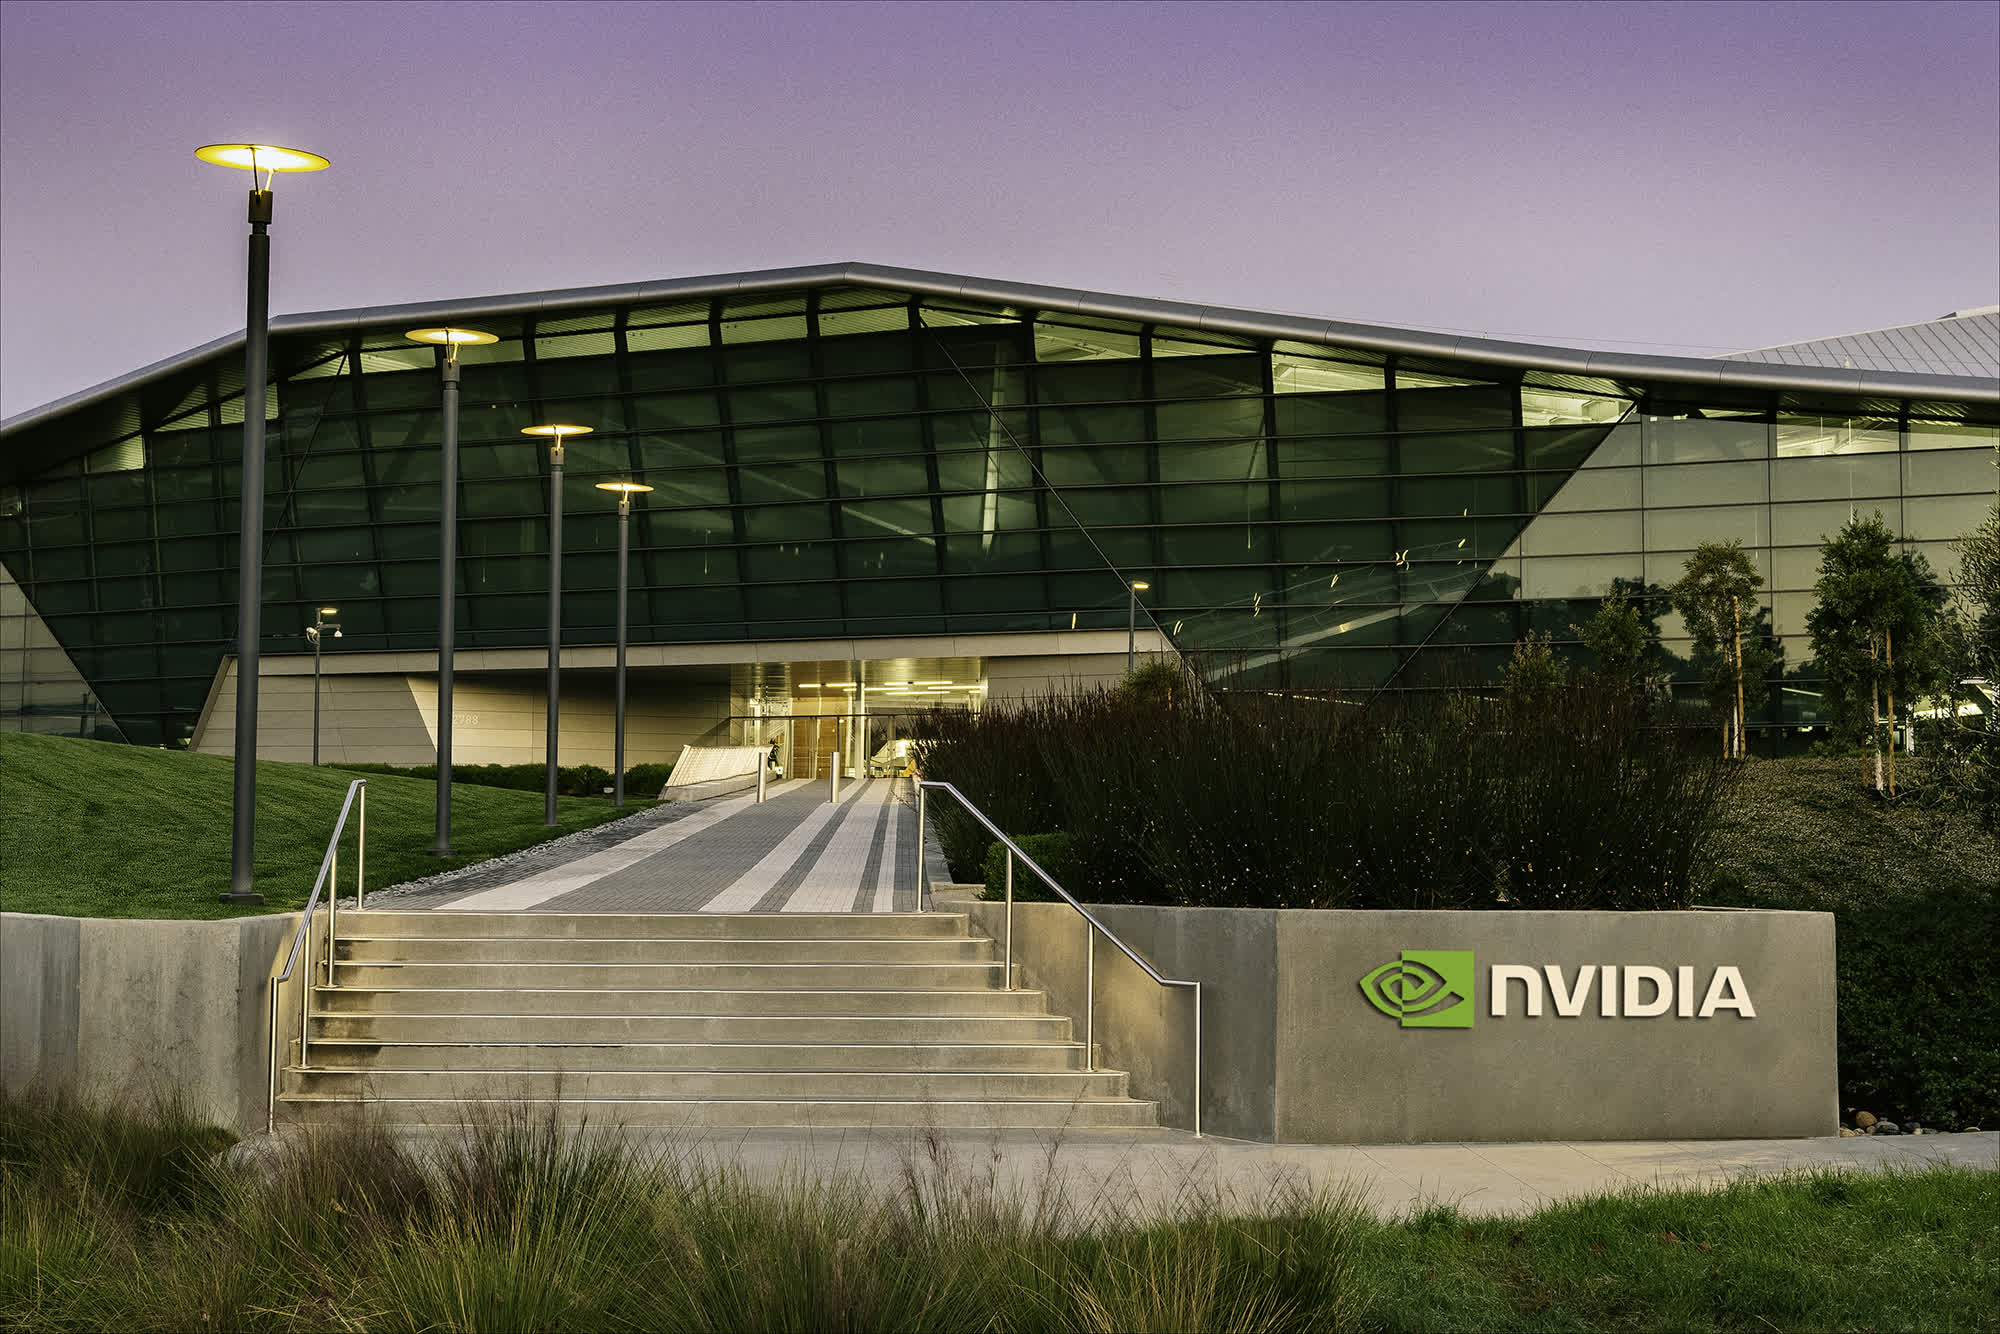 Nvidia quarterly sales to exceed $5.3 billion forecast, stock rallies